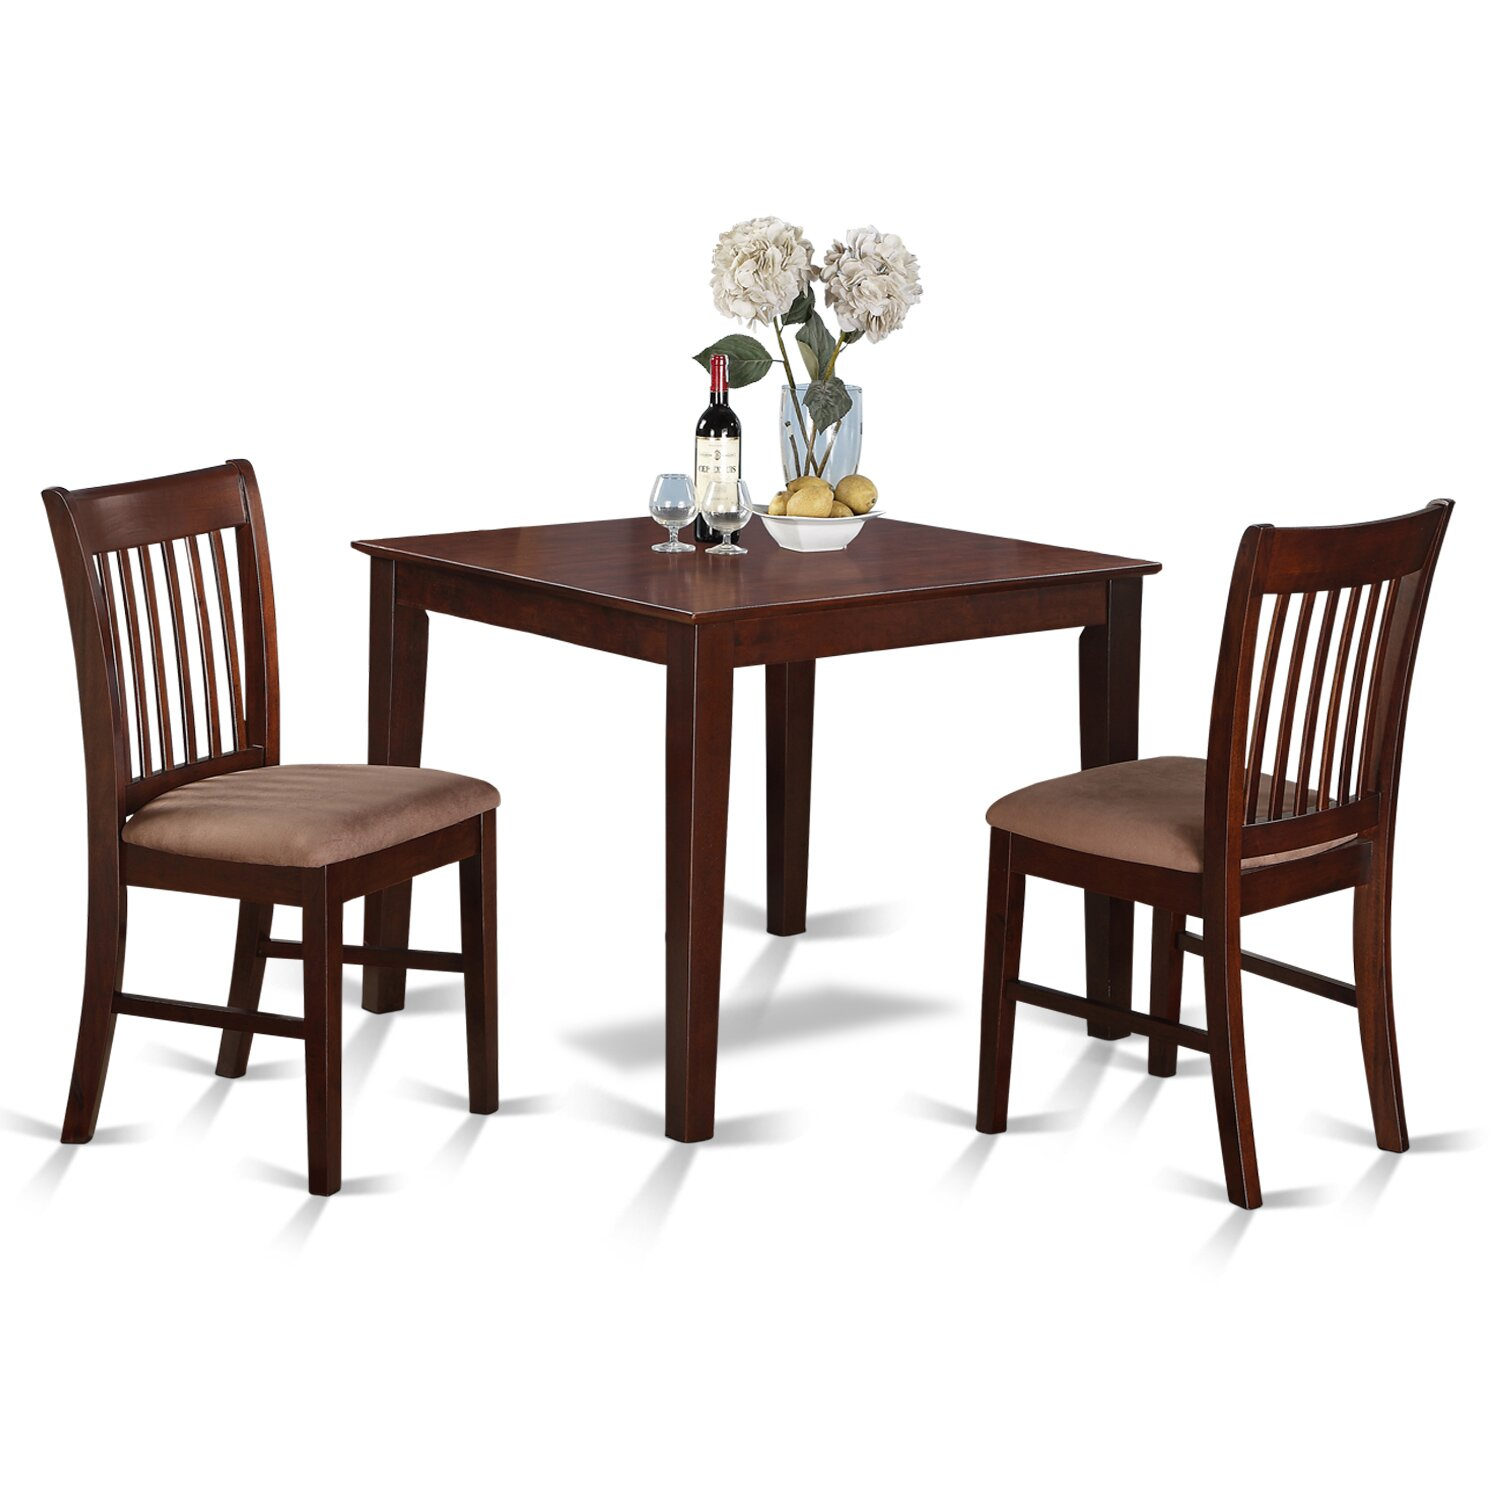 East West Oxford 3 Piece Dining Set & Reviews